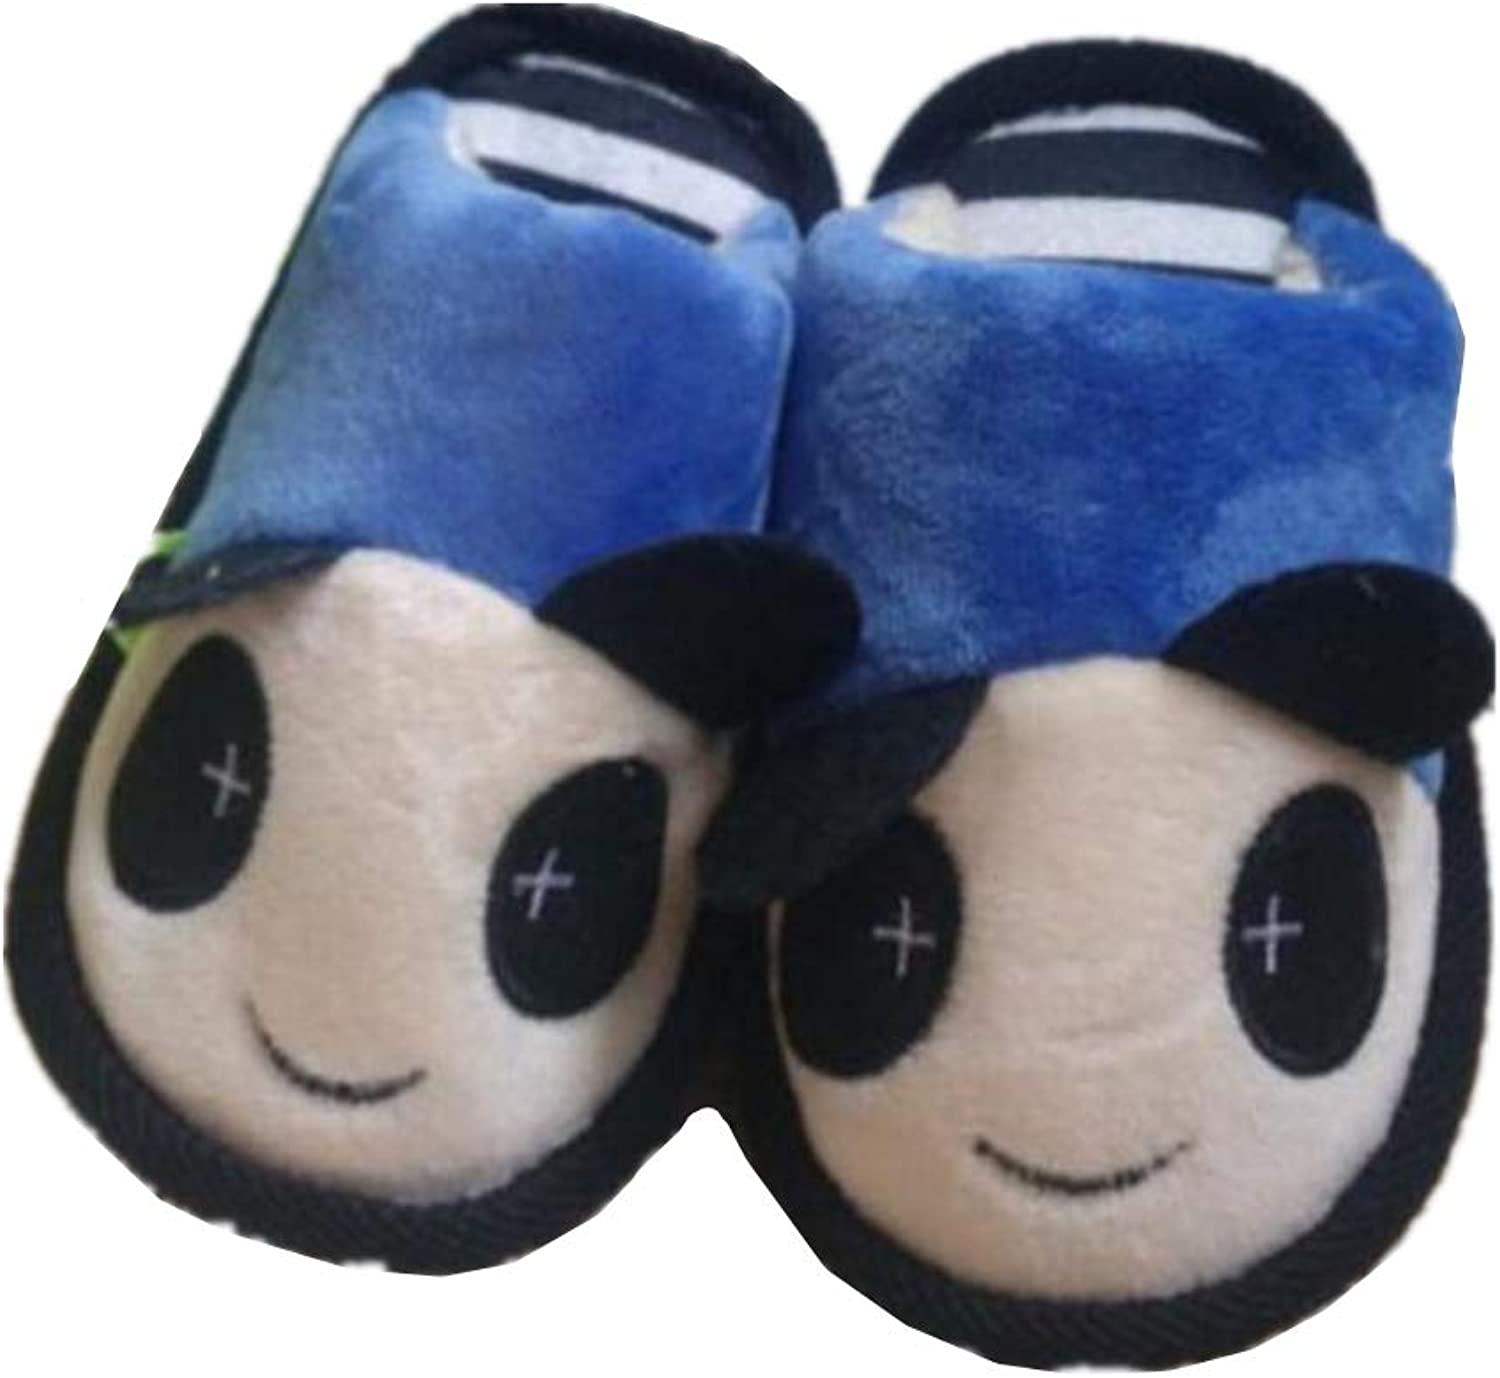 Bon Soir Slippers Fleece Lined Slip On Clog House shoes Indoor Outdoor